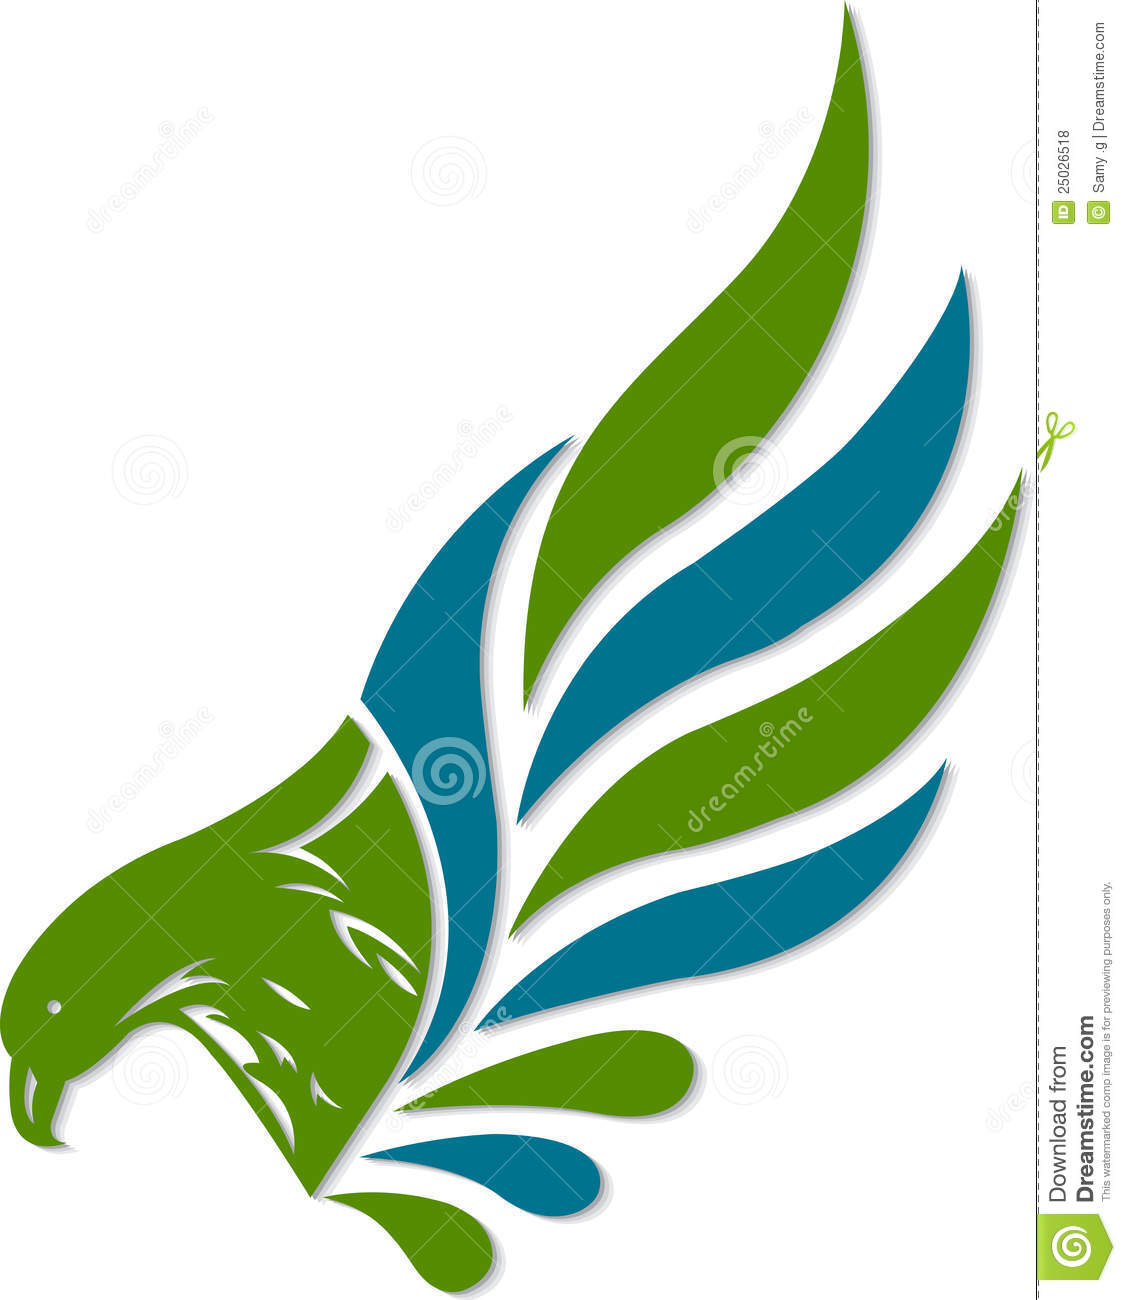 eagle logo stock vector image of artistic color graphic